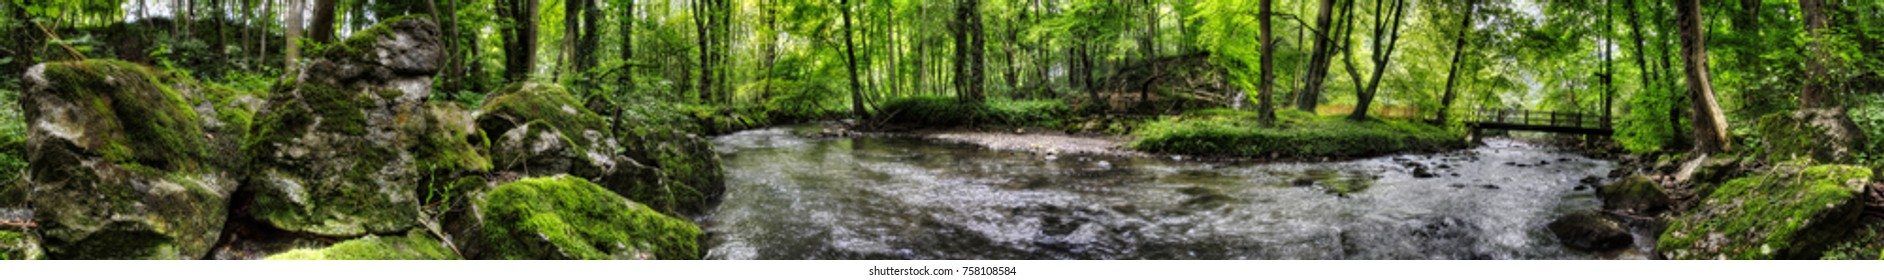 Small River through Forest